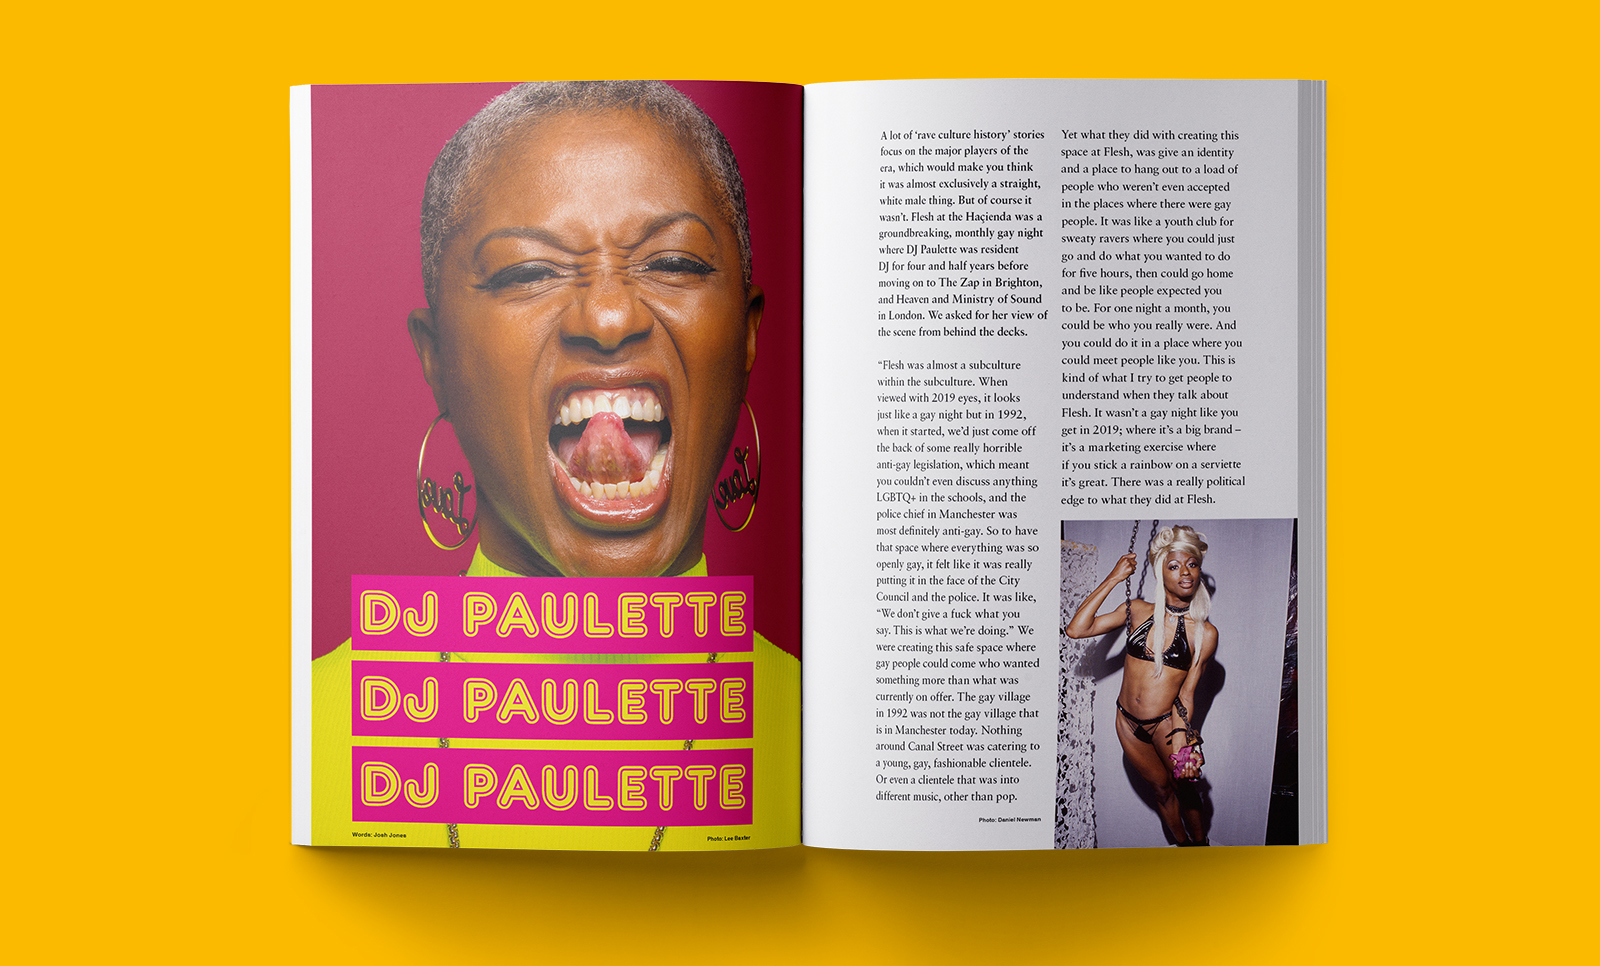 Sweet-Harmony-Saatchi-Gallery-Rave-Today-Book-DJ-Paulette-James-Lee-Duffy.jpg